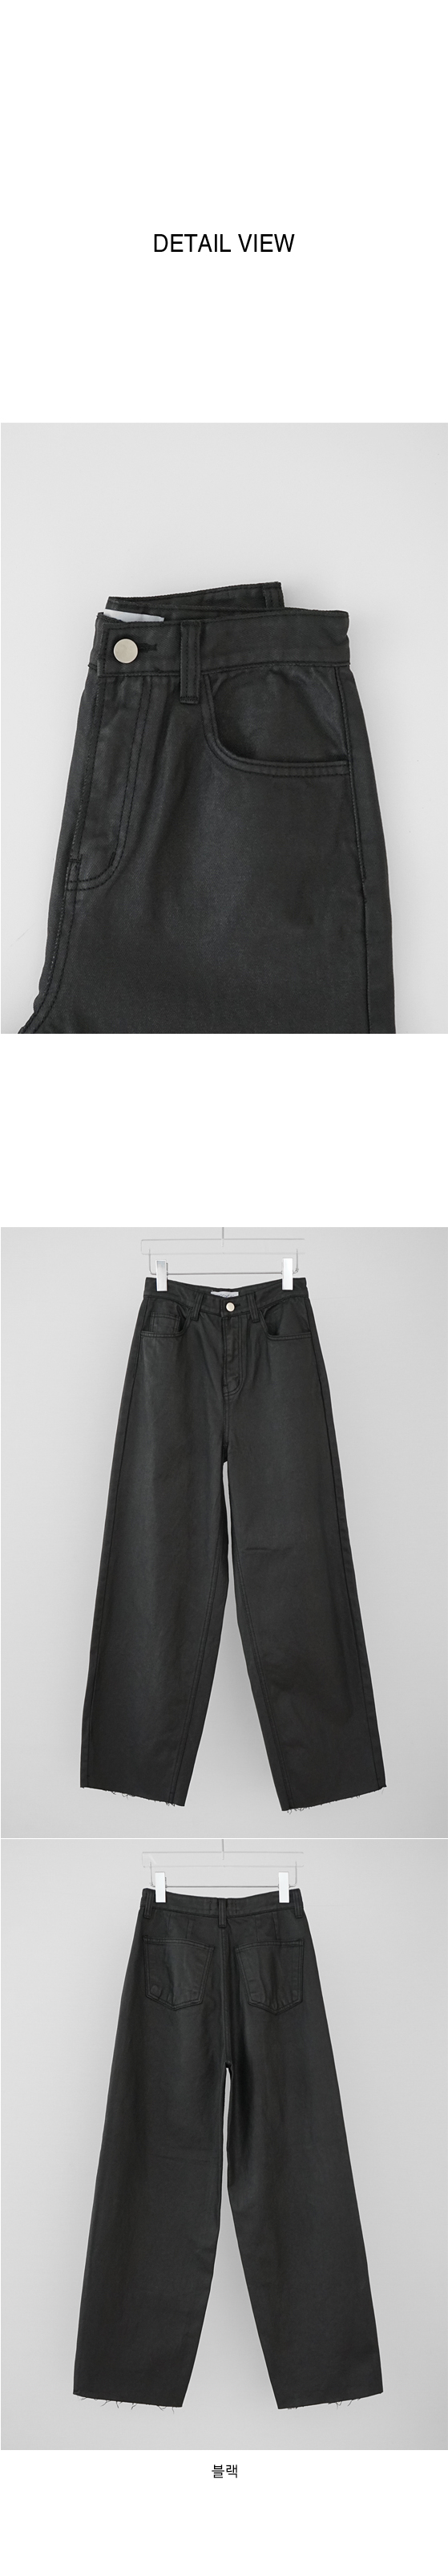 straight fit coating pants